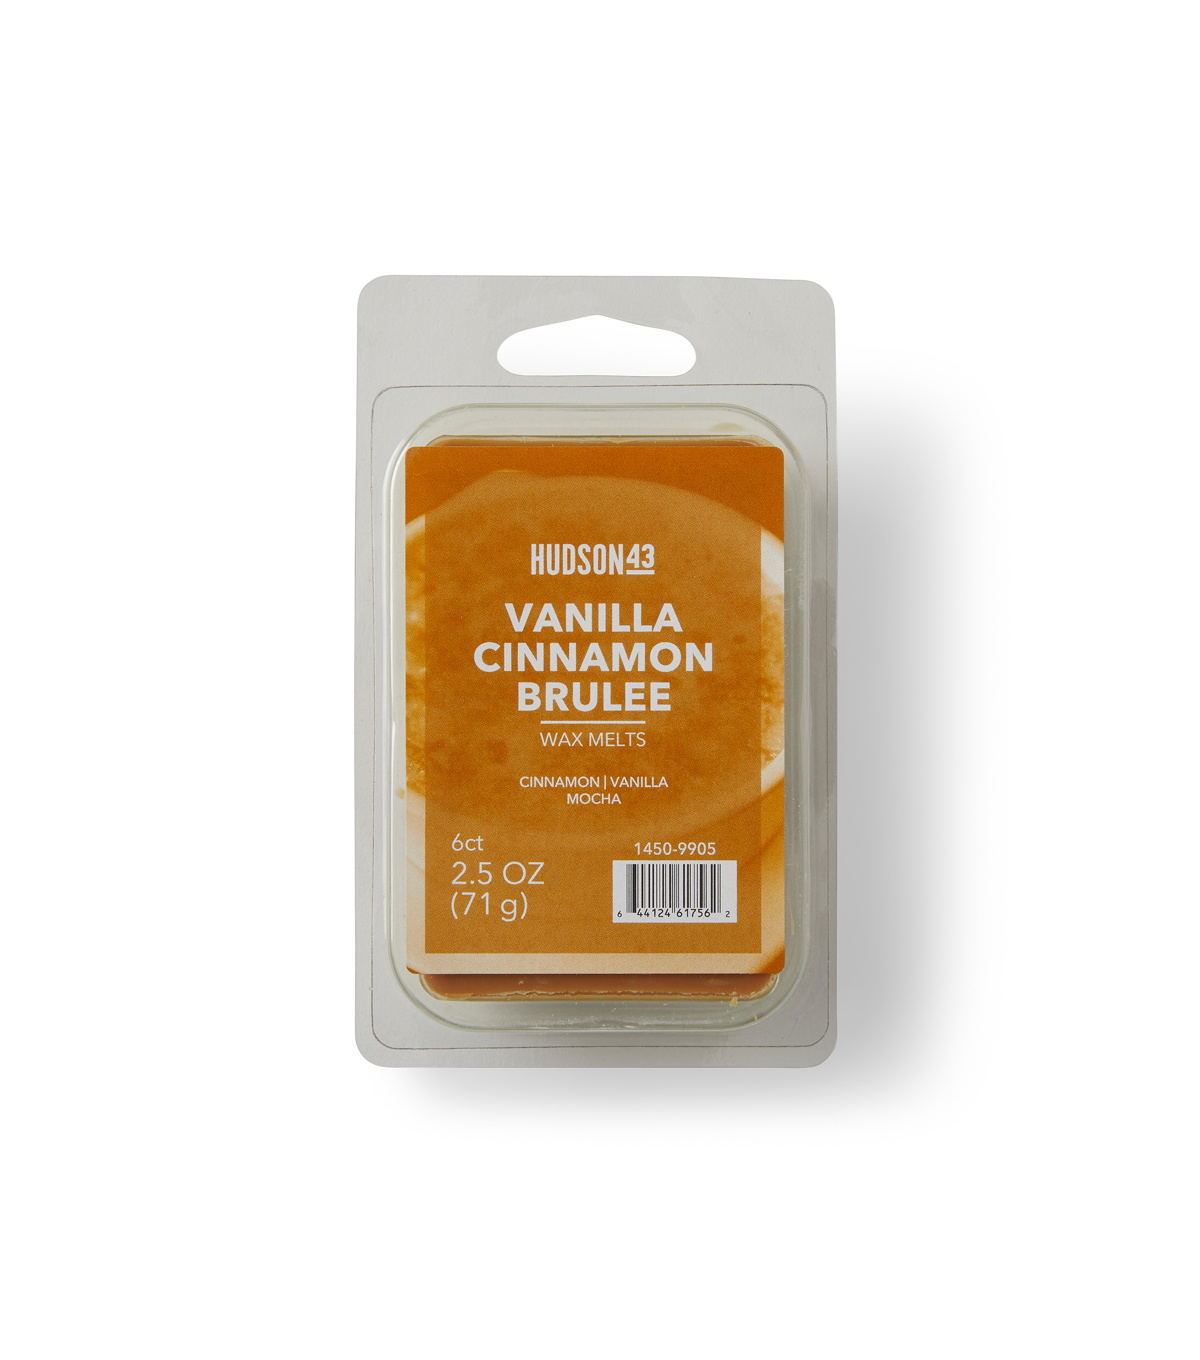 Hudson 43 Candle & Light Collection Wax Melt-Vanilla Cinnamon Brulee